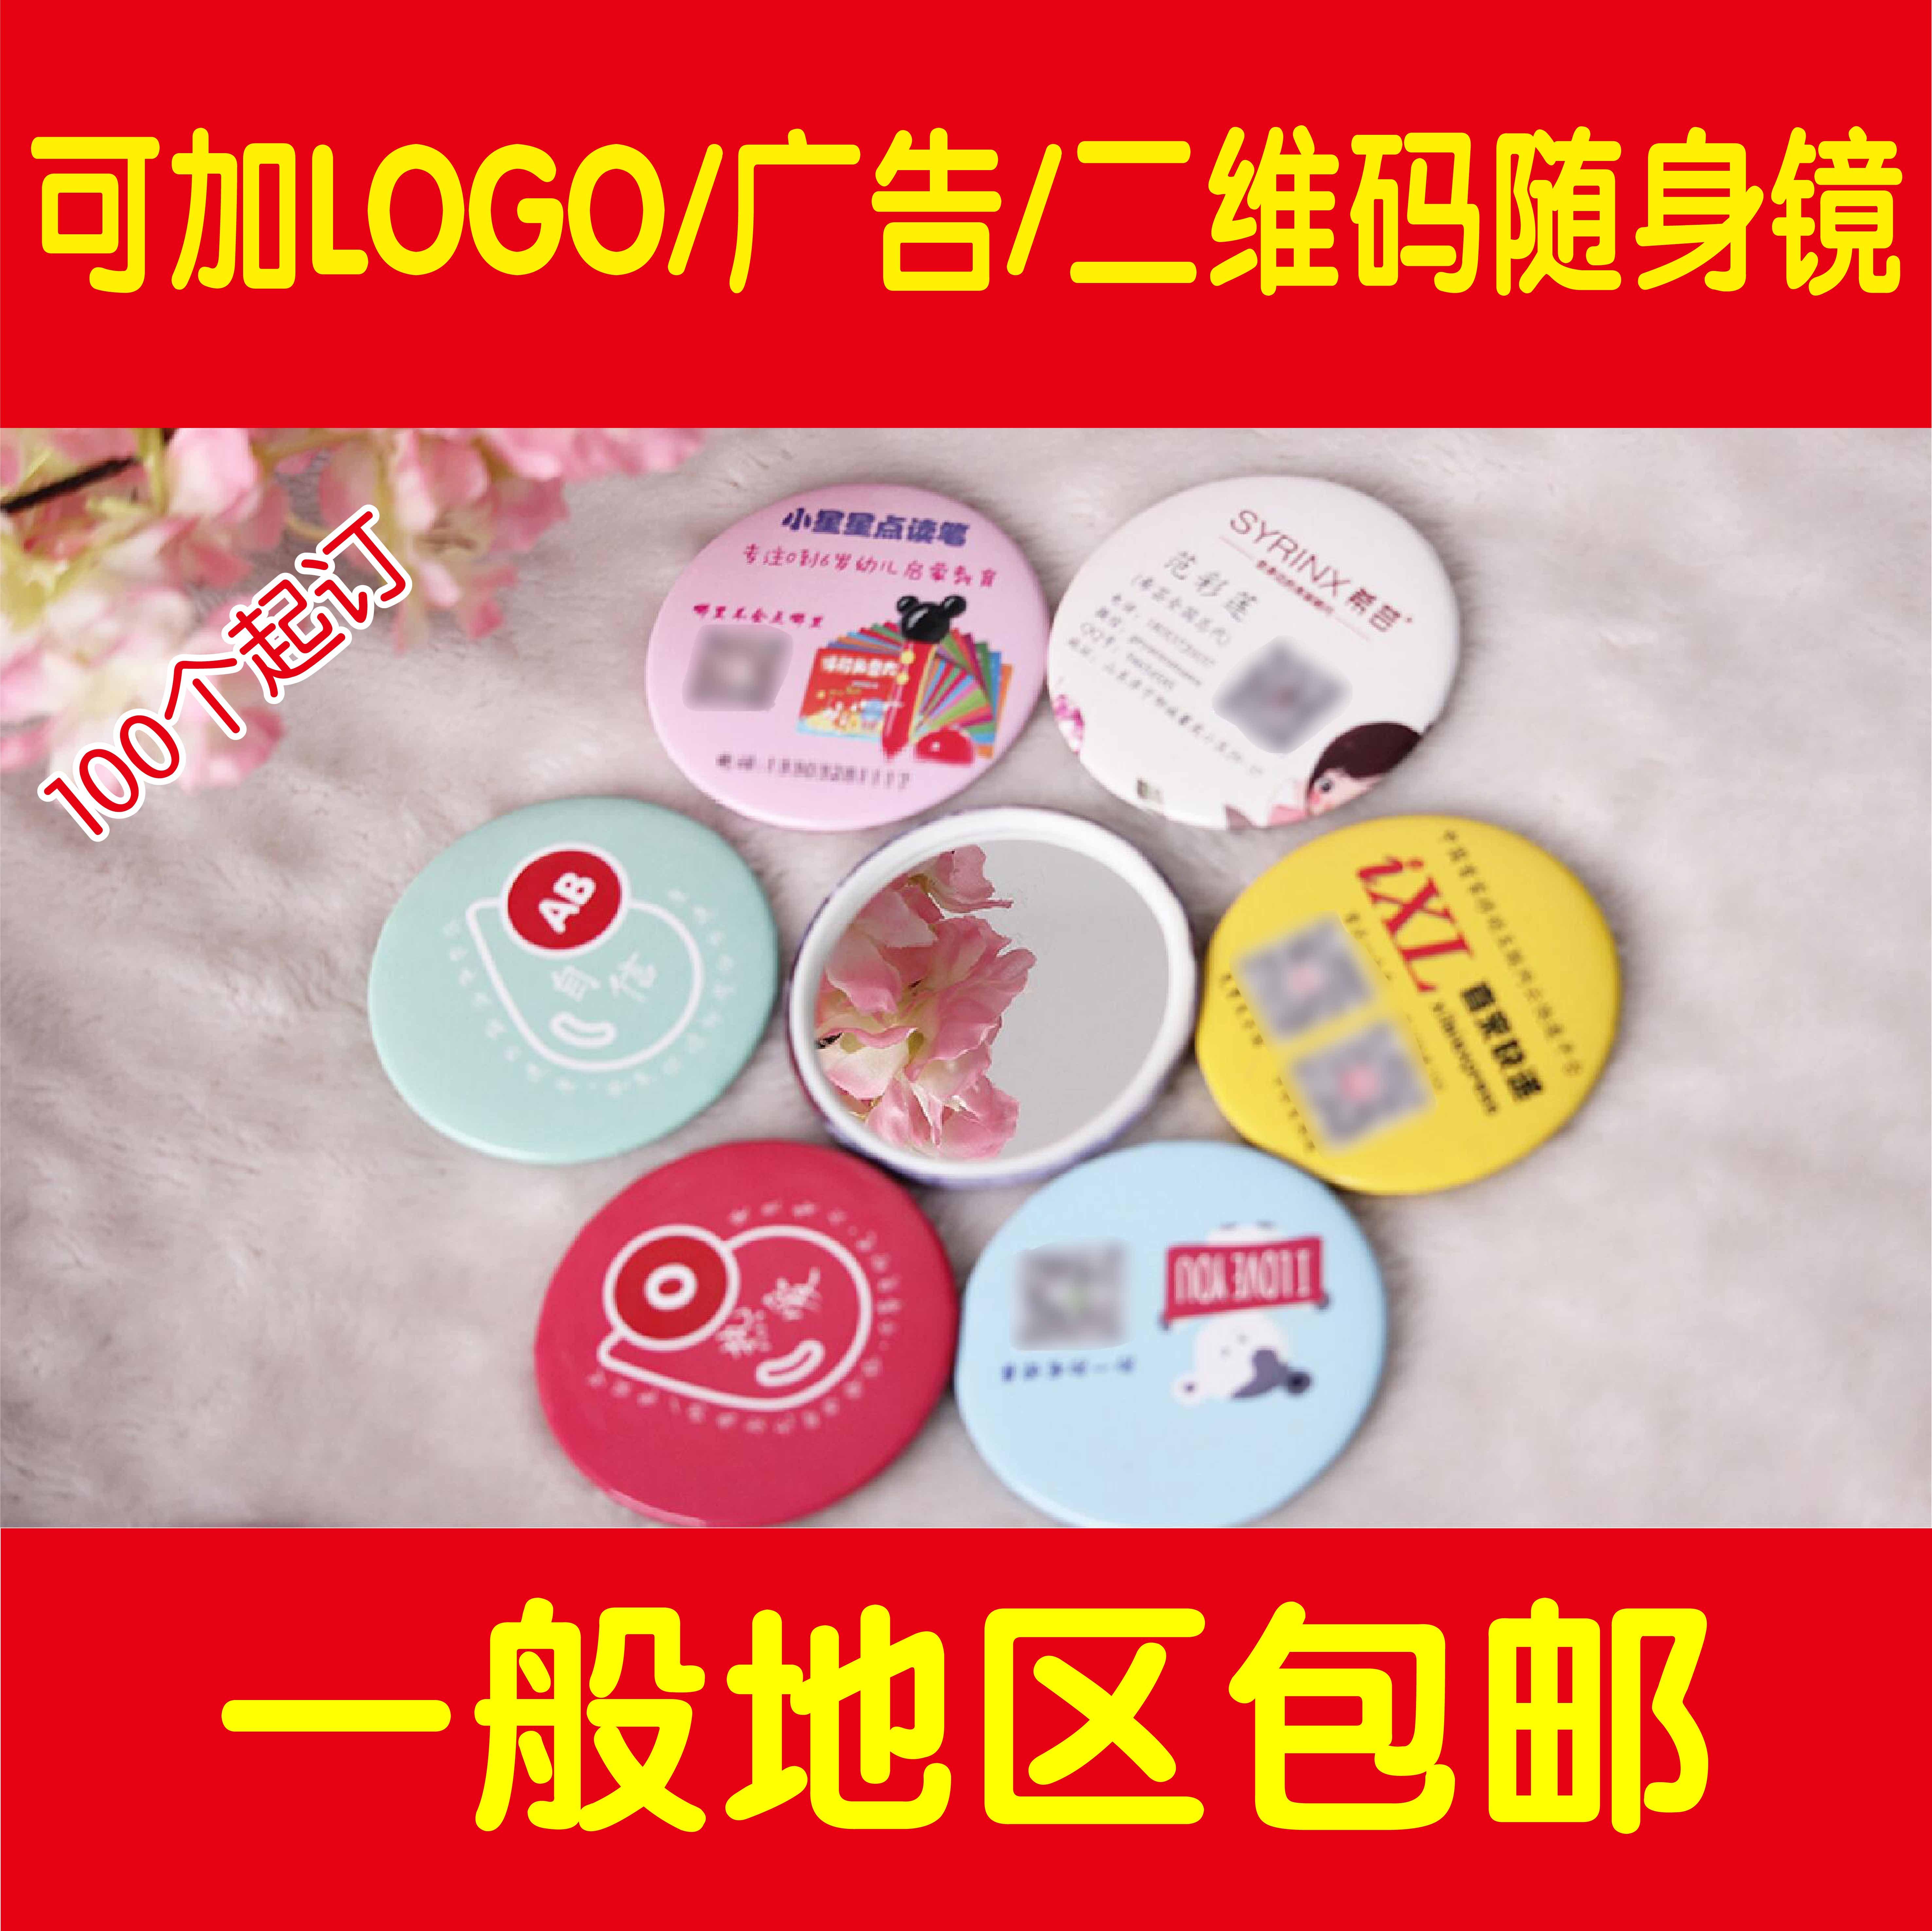 Customized logo gift mirror customized advertising QR code can be customized